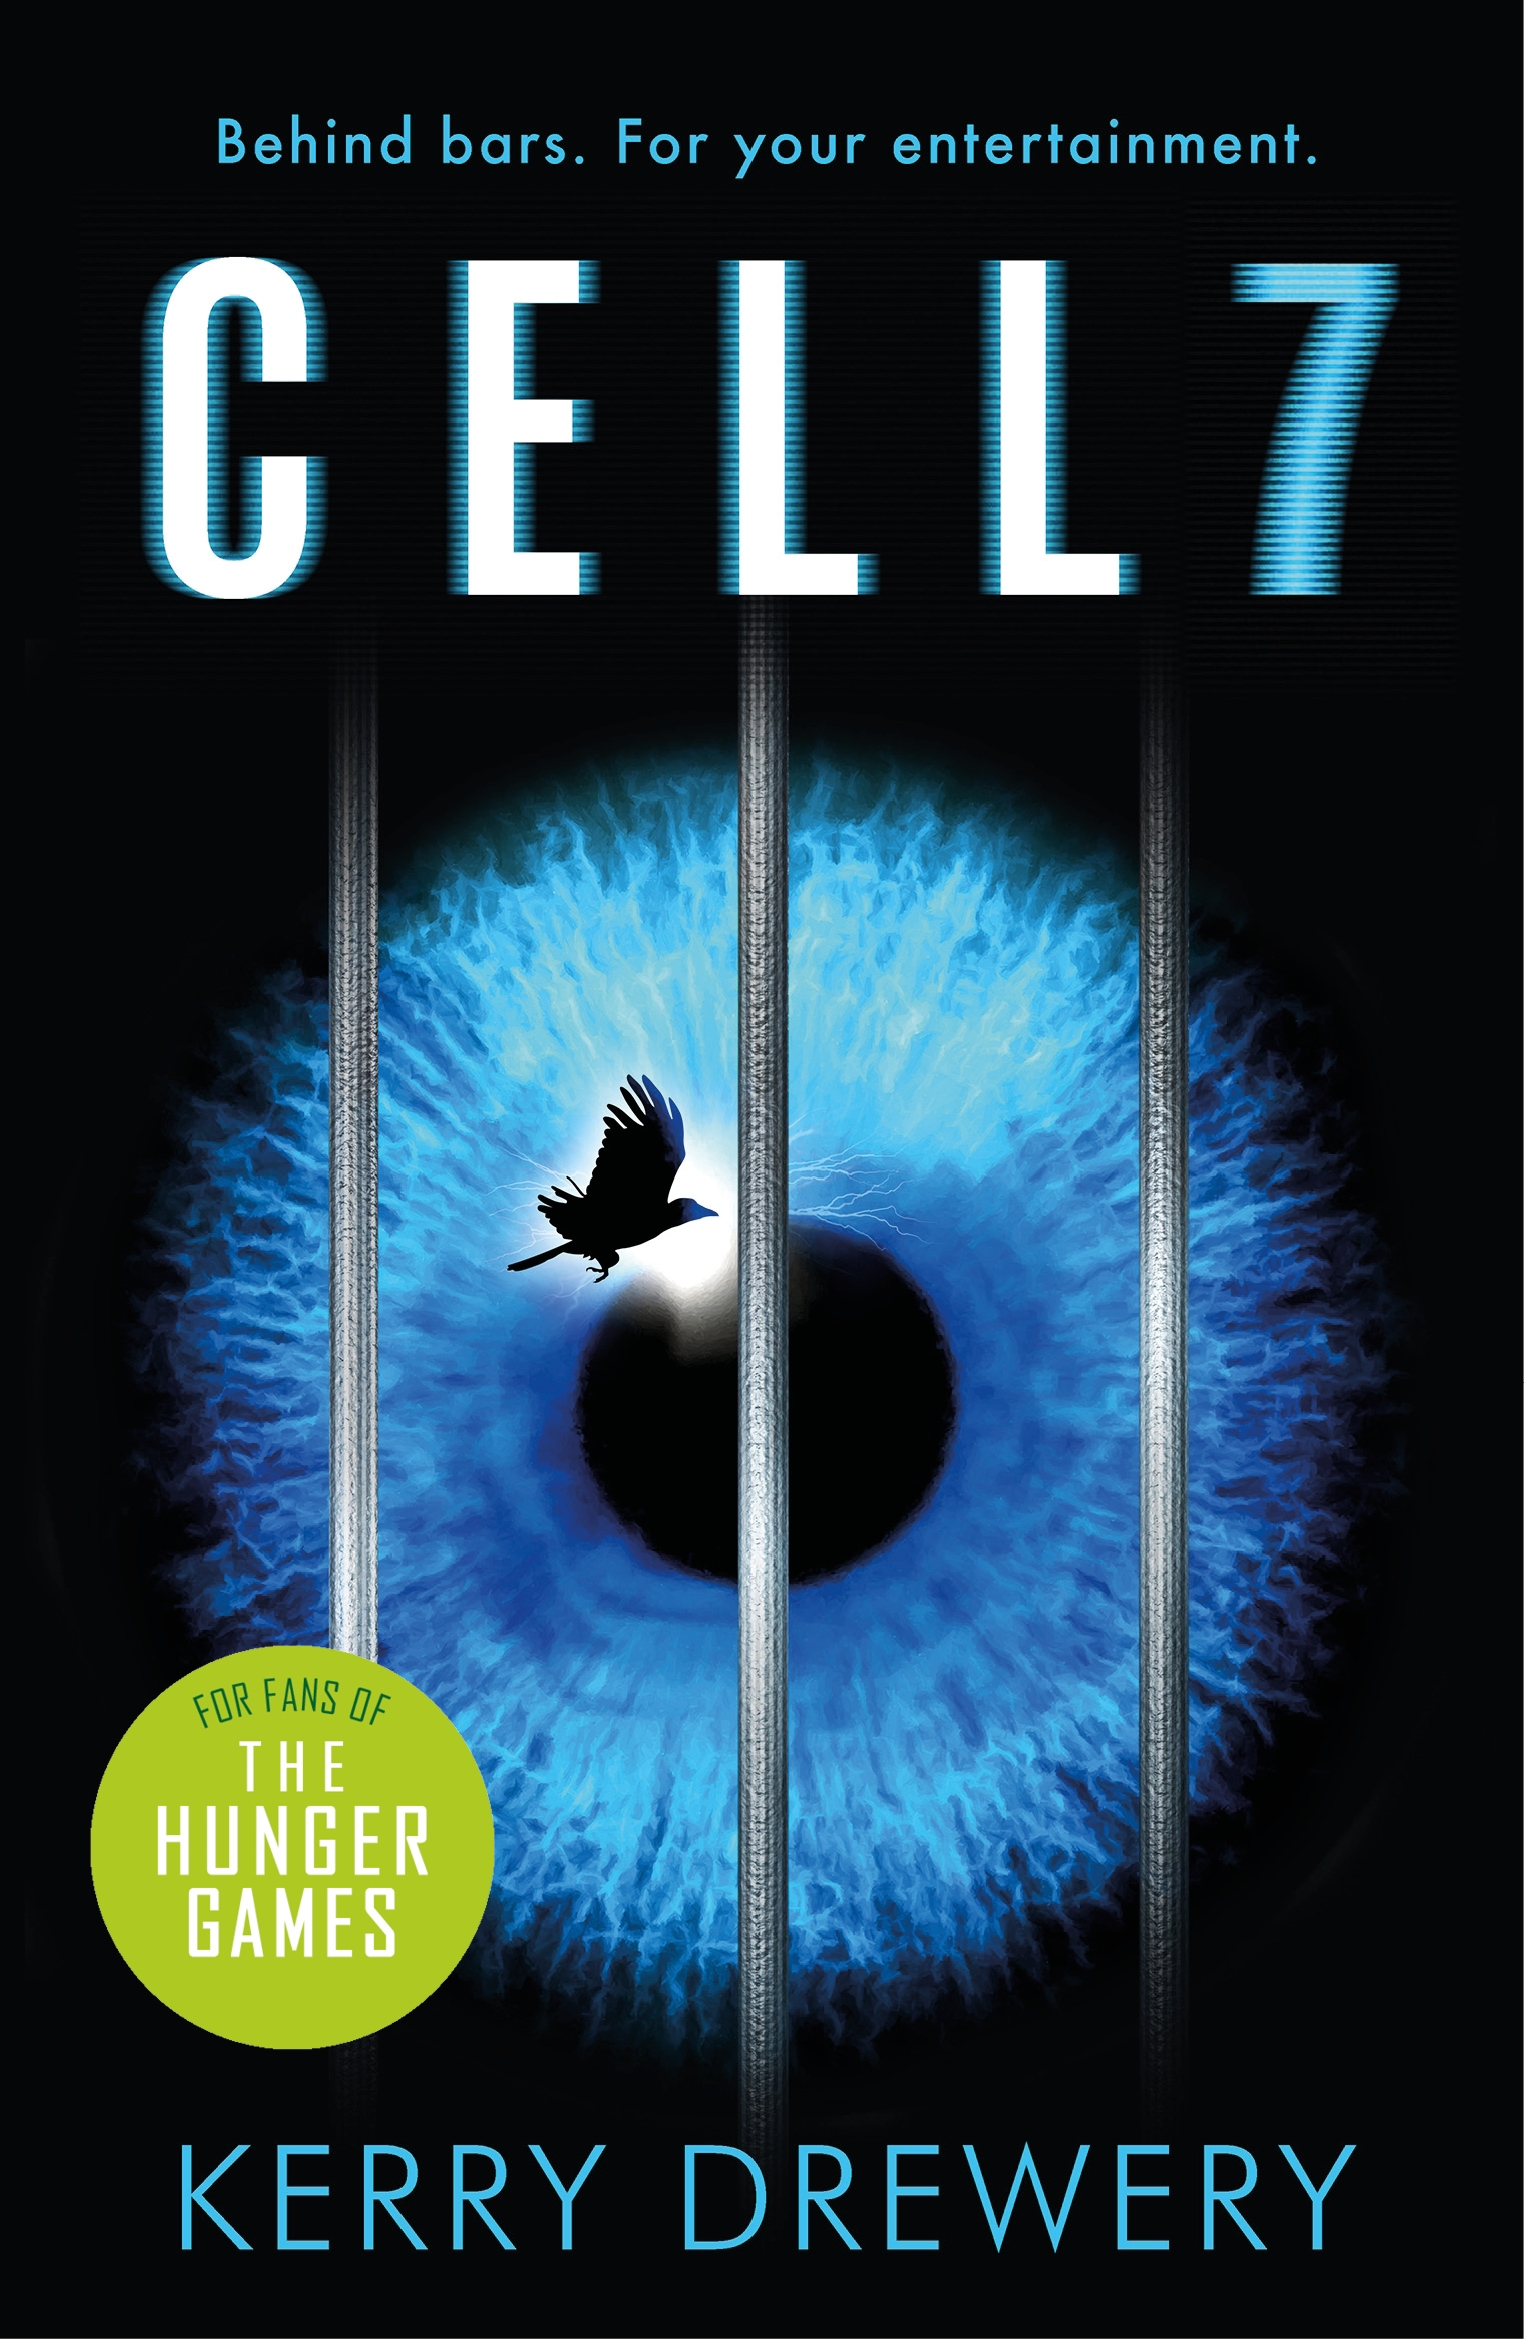 Cell 7 by Kerry Drewery